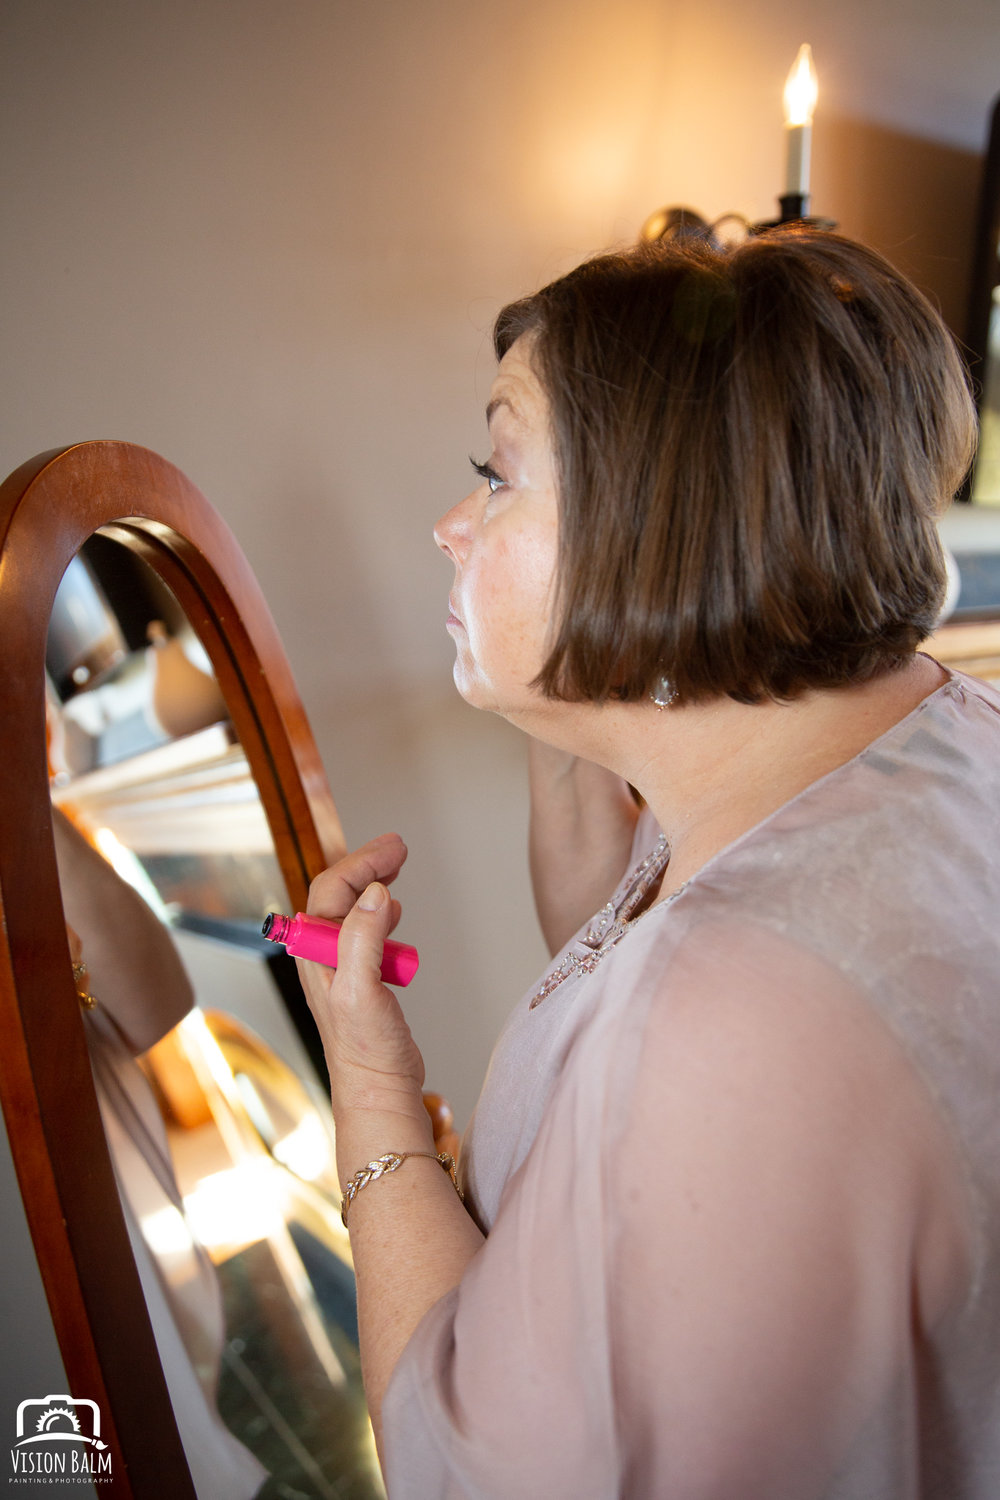 Lifestyle portrait of bride's mother putting makeup on for the wedding in Zuka's Hilltop Barn by Vision Balm in Charleston, SC.